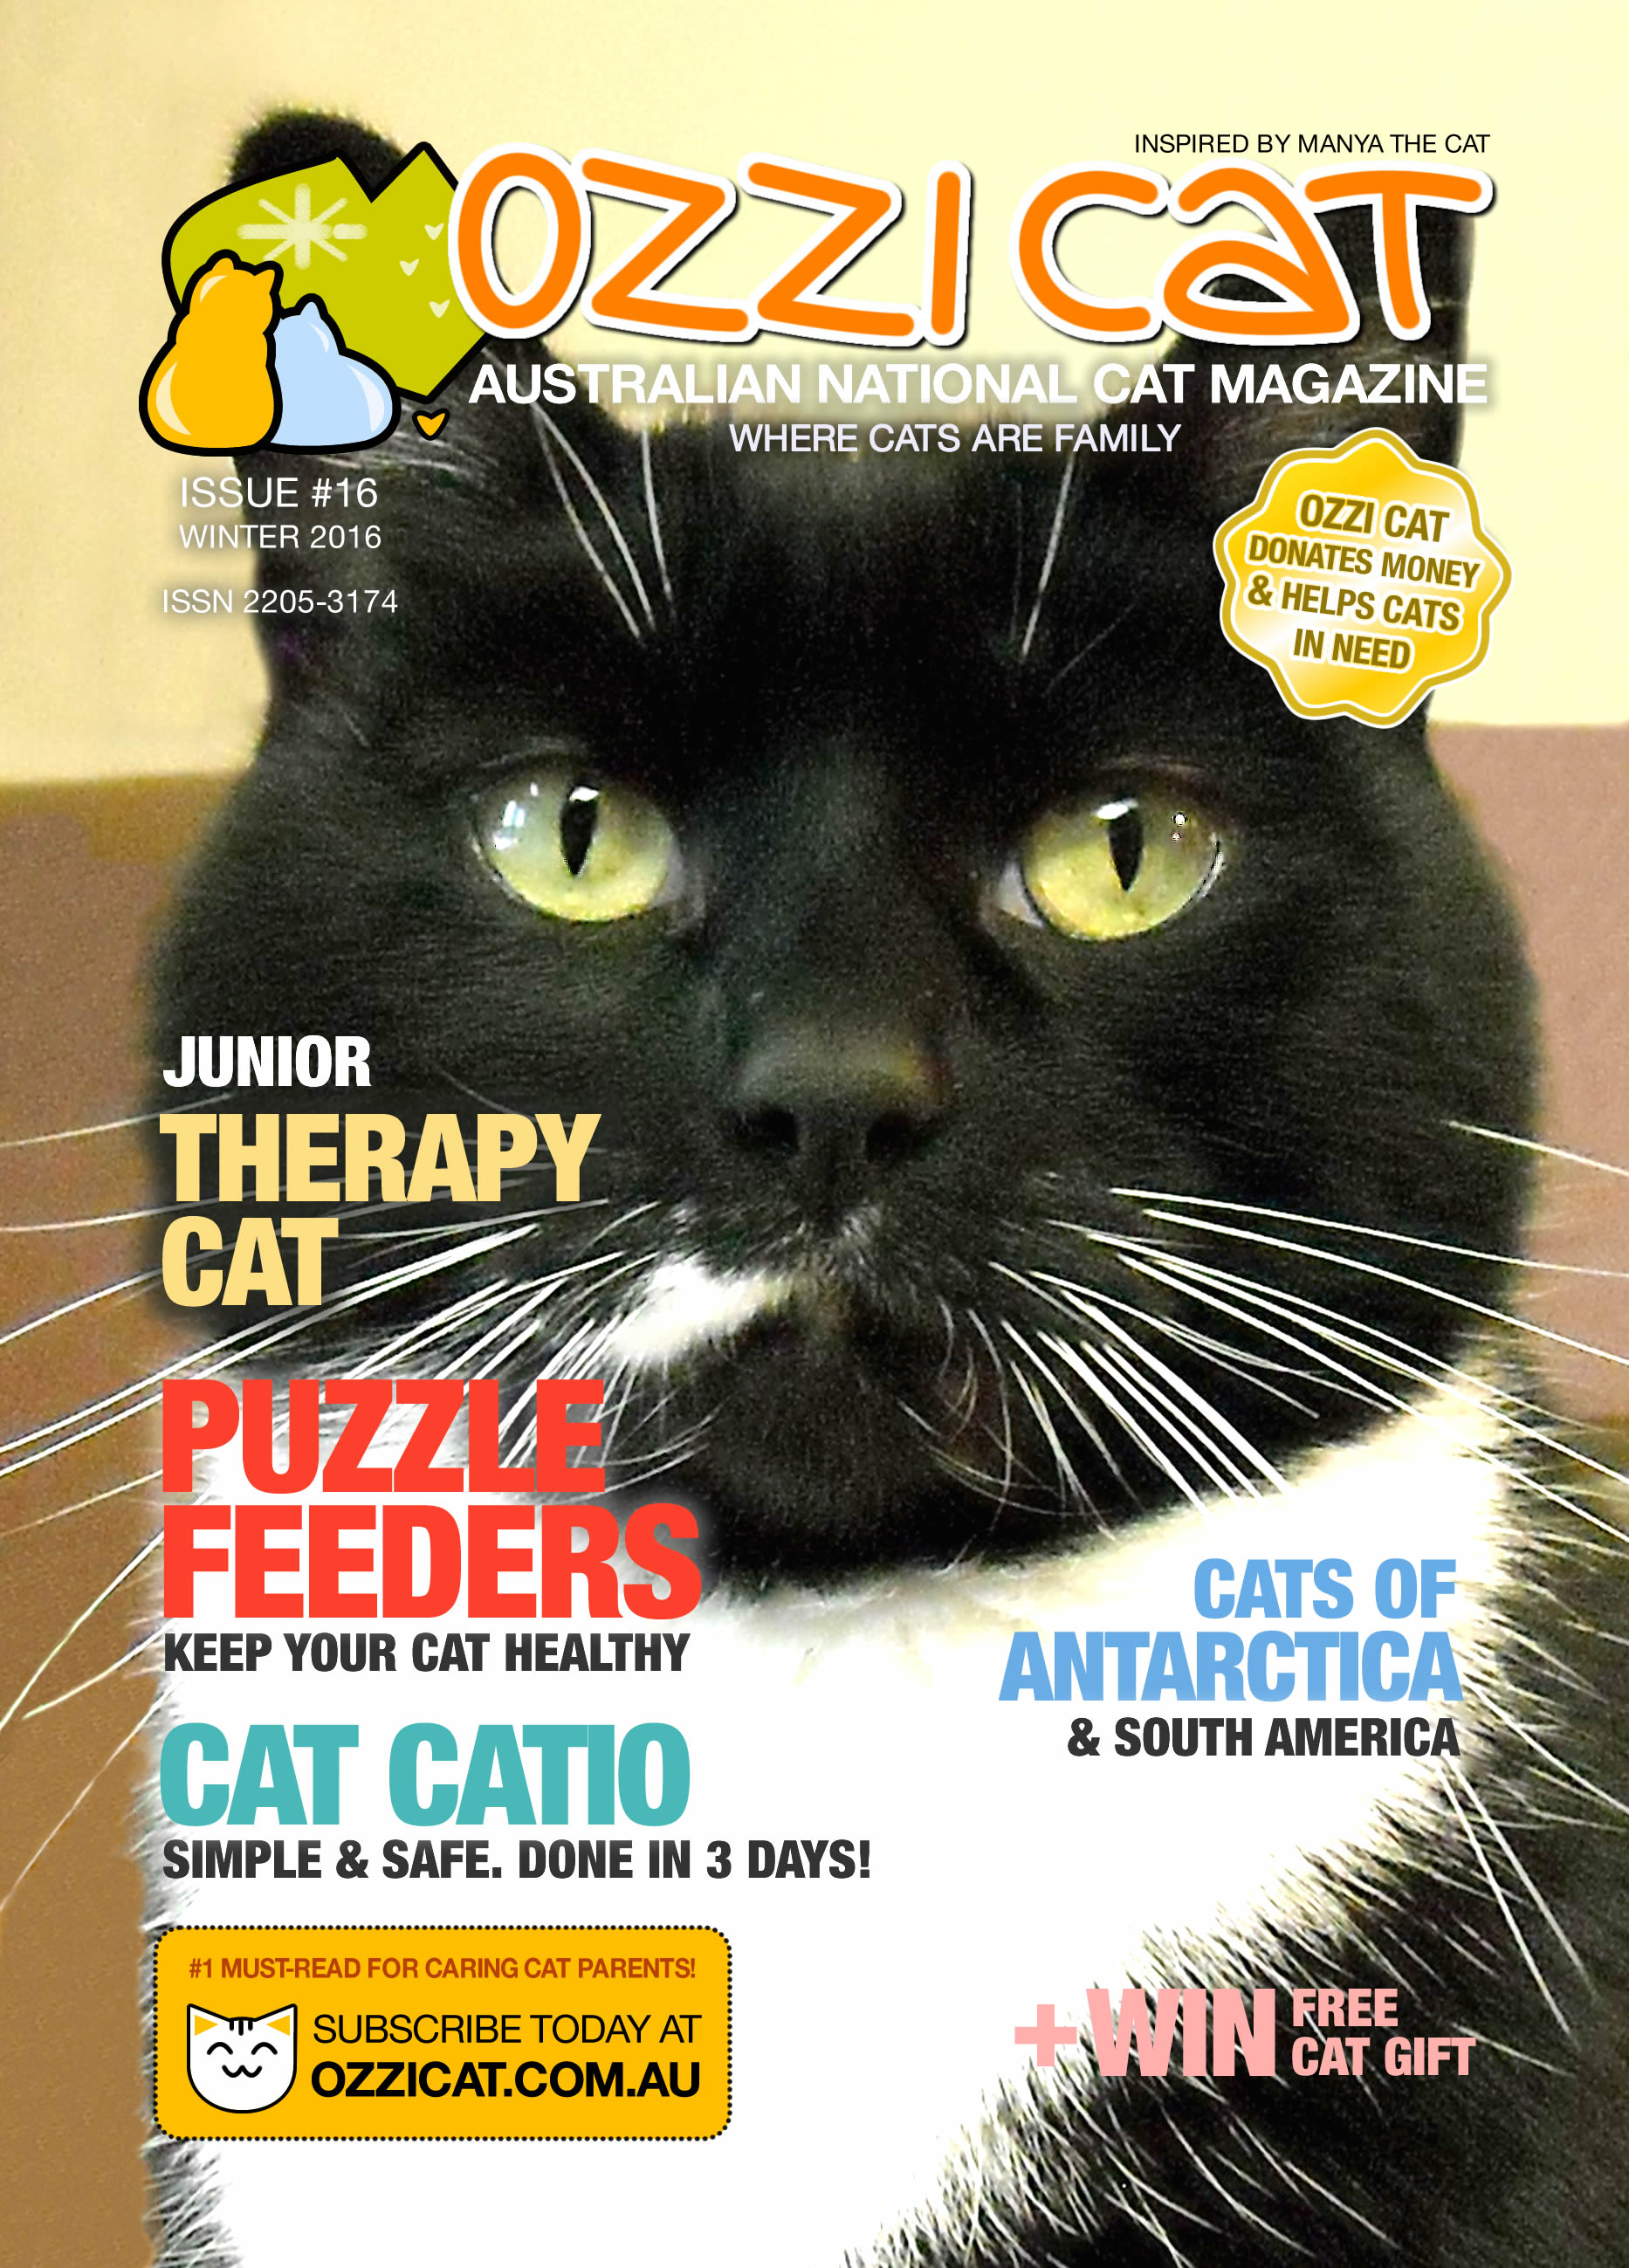 Ozzi Cat - Australian National Cat Magazine - Issue 16 - WINTER 2016